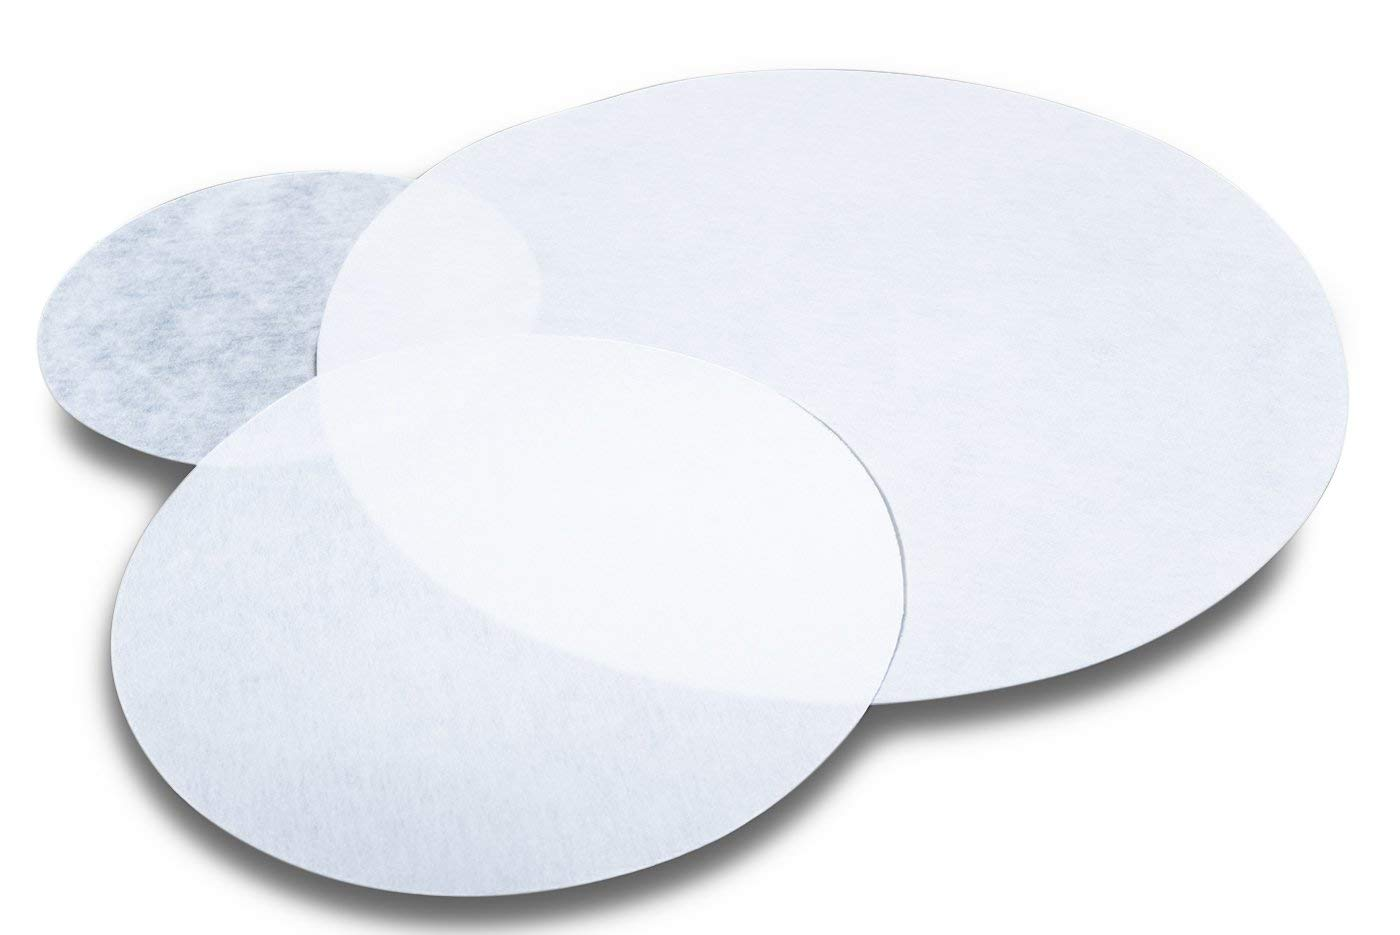 BVV 8 inch Cellulose Filter Paper 50 Micron 5 Pack